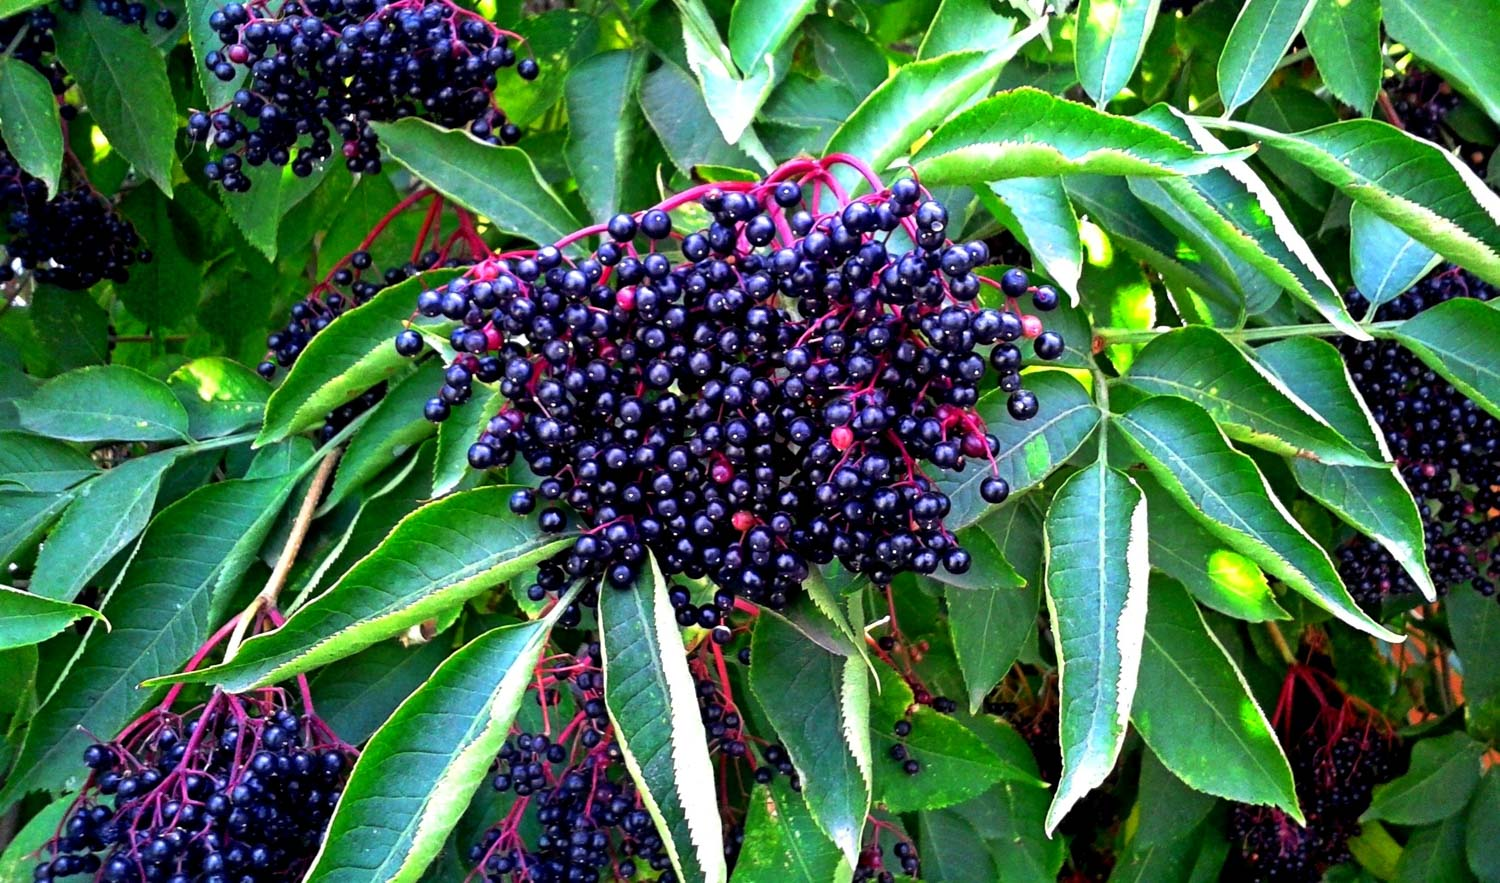 Sauco berries on a buh. Sambucus berries. Common names include elder, elderberry, black european elder, European elderberry, European black elderberry. Black sambucus berries & leaves growing on tree or shrub. Fruit cluster